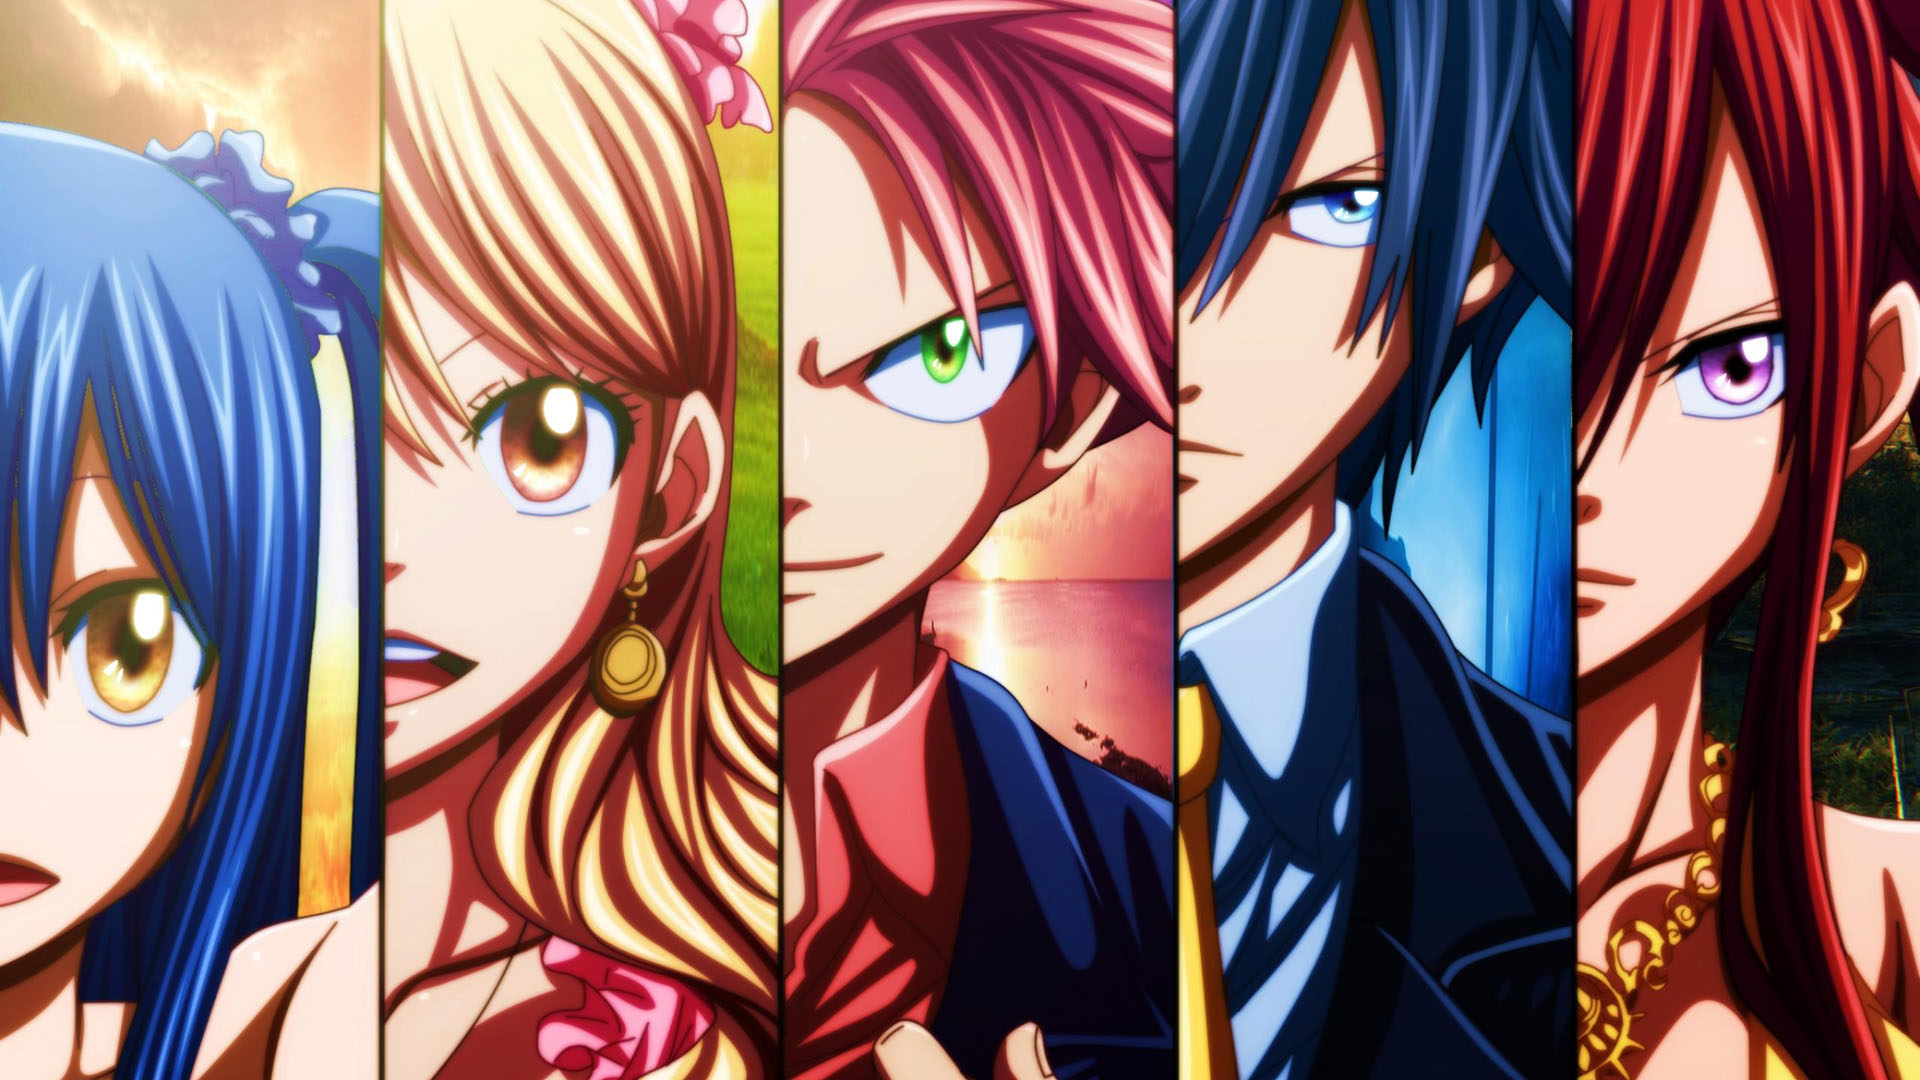 Anime Fairy Tail Wallpaper Hd